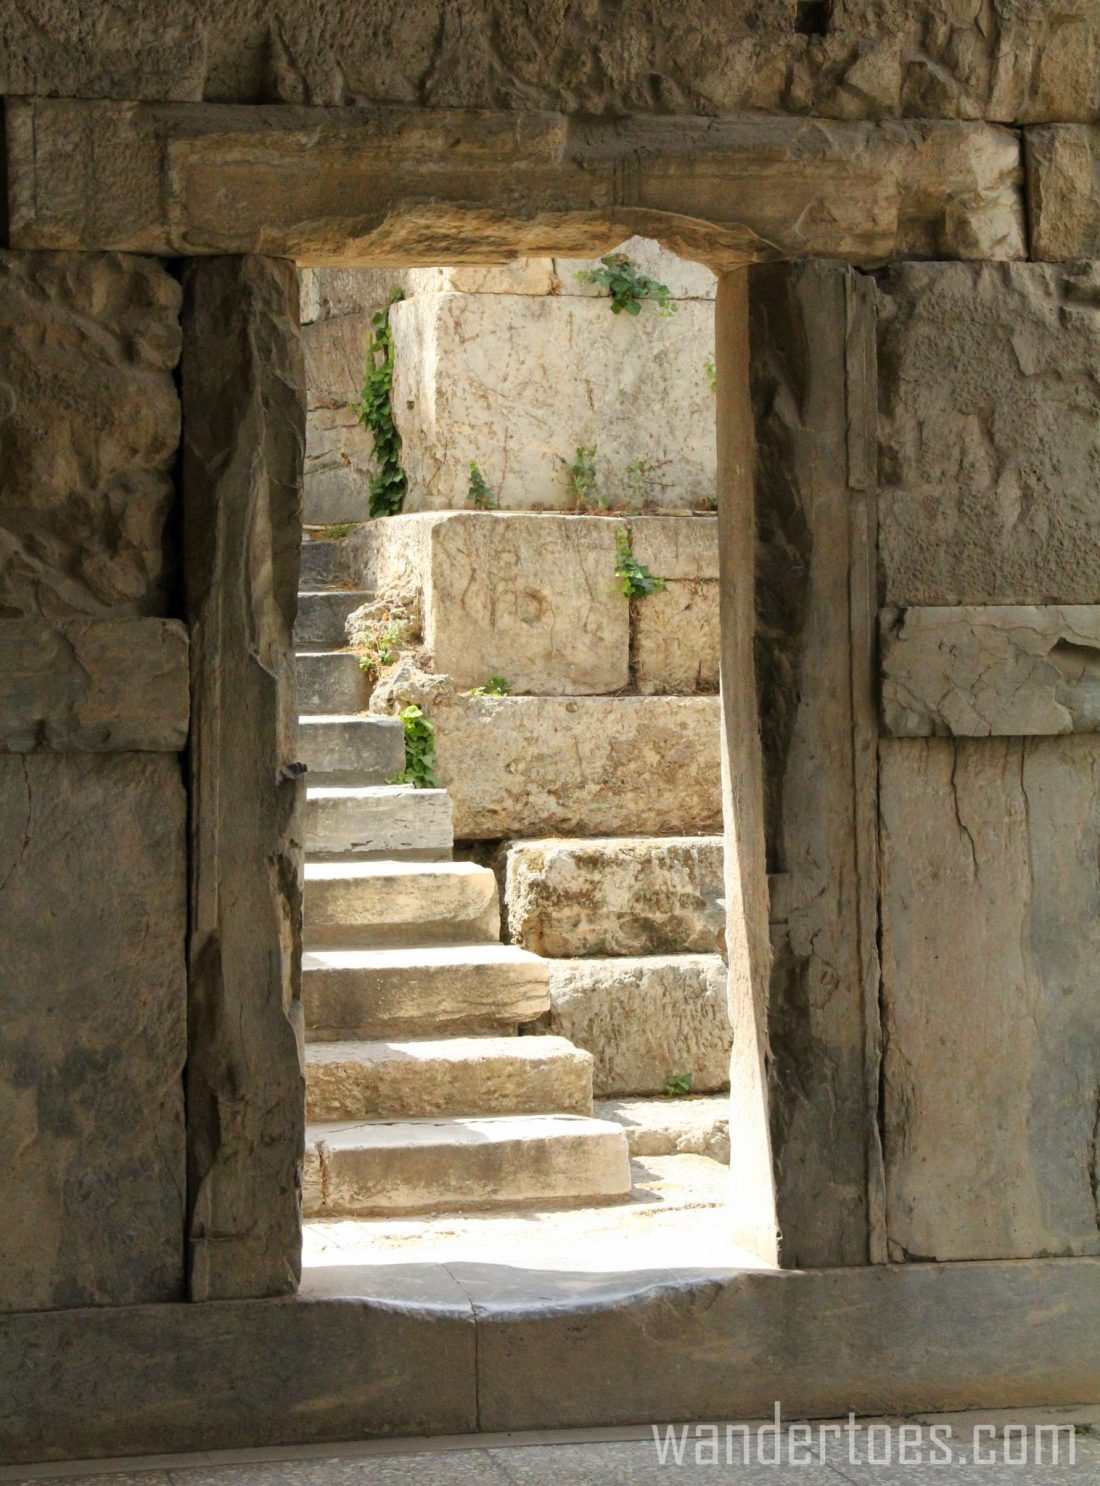 Doorway at end of ancient Stoa of Attalos in Agora of Athens